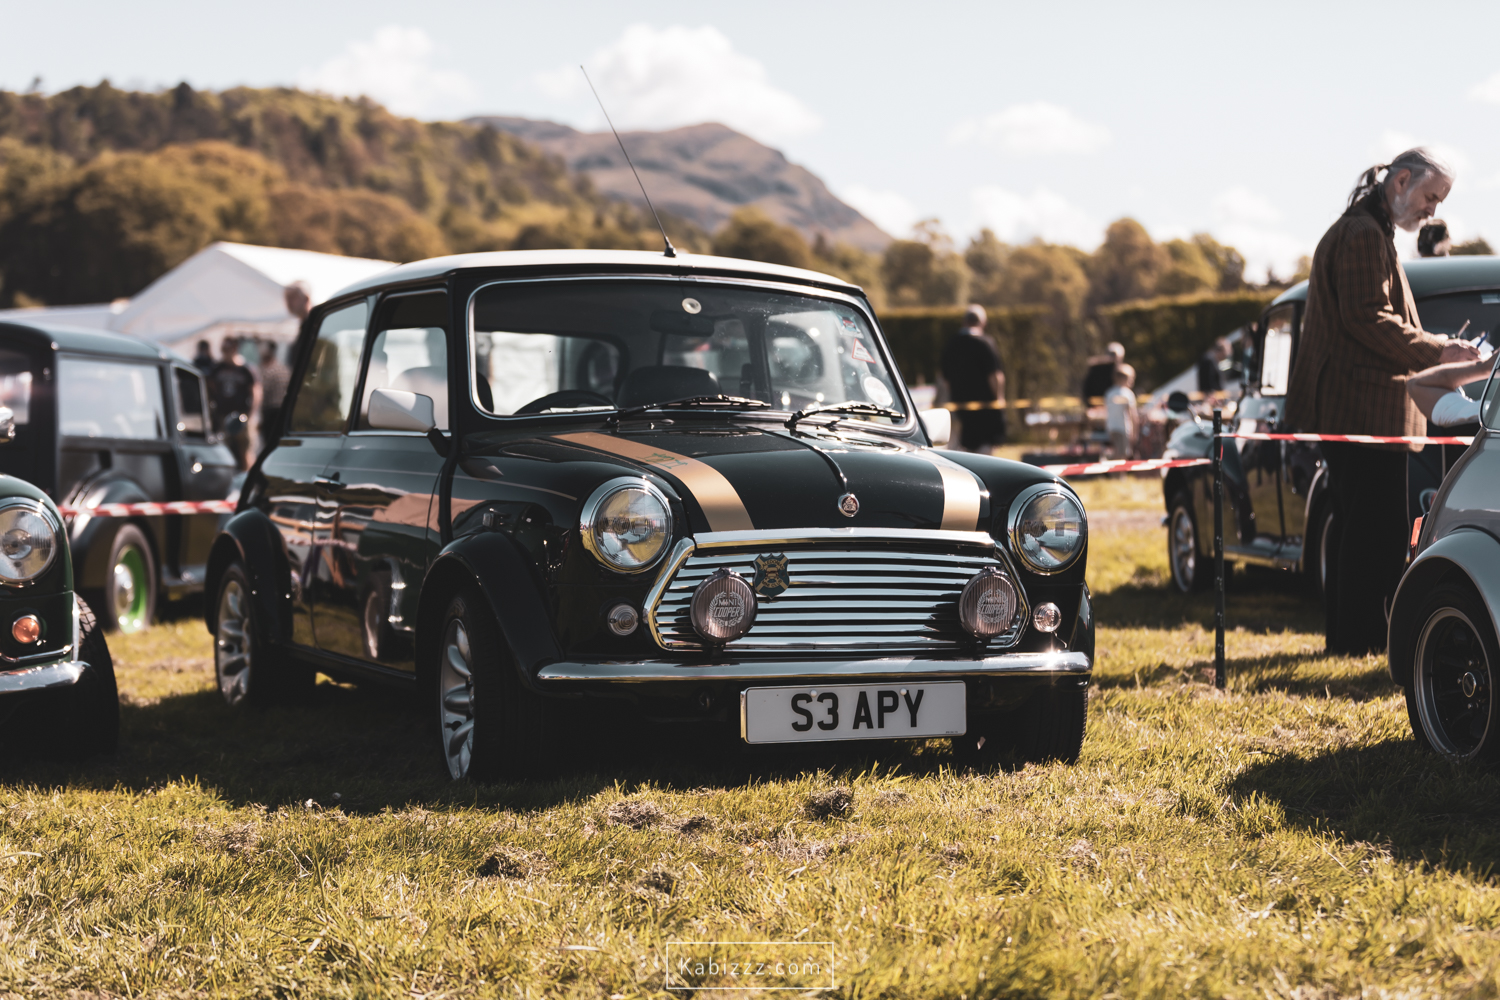 Kabizzz_Photography_Stirling_District_Classic _cars-7.jpg